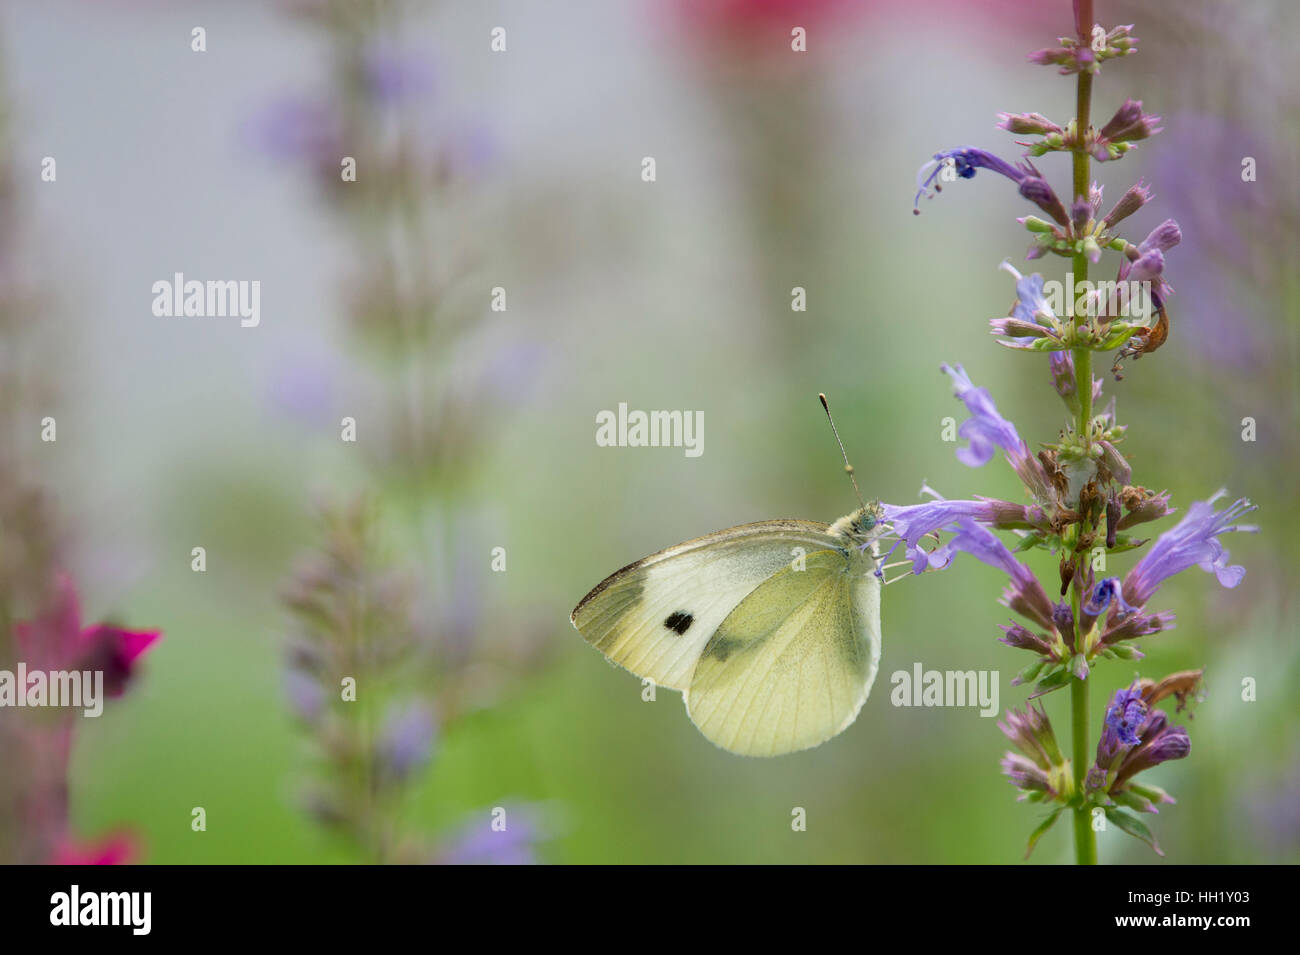 A small yellow butterfly feeding on purple flowers with a green and pink background. - Stock Image